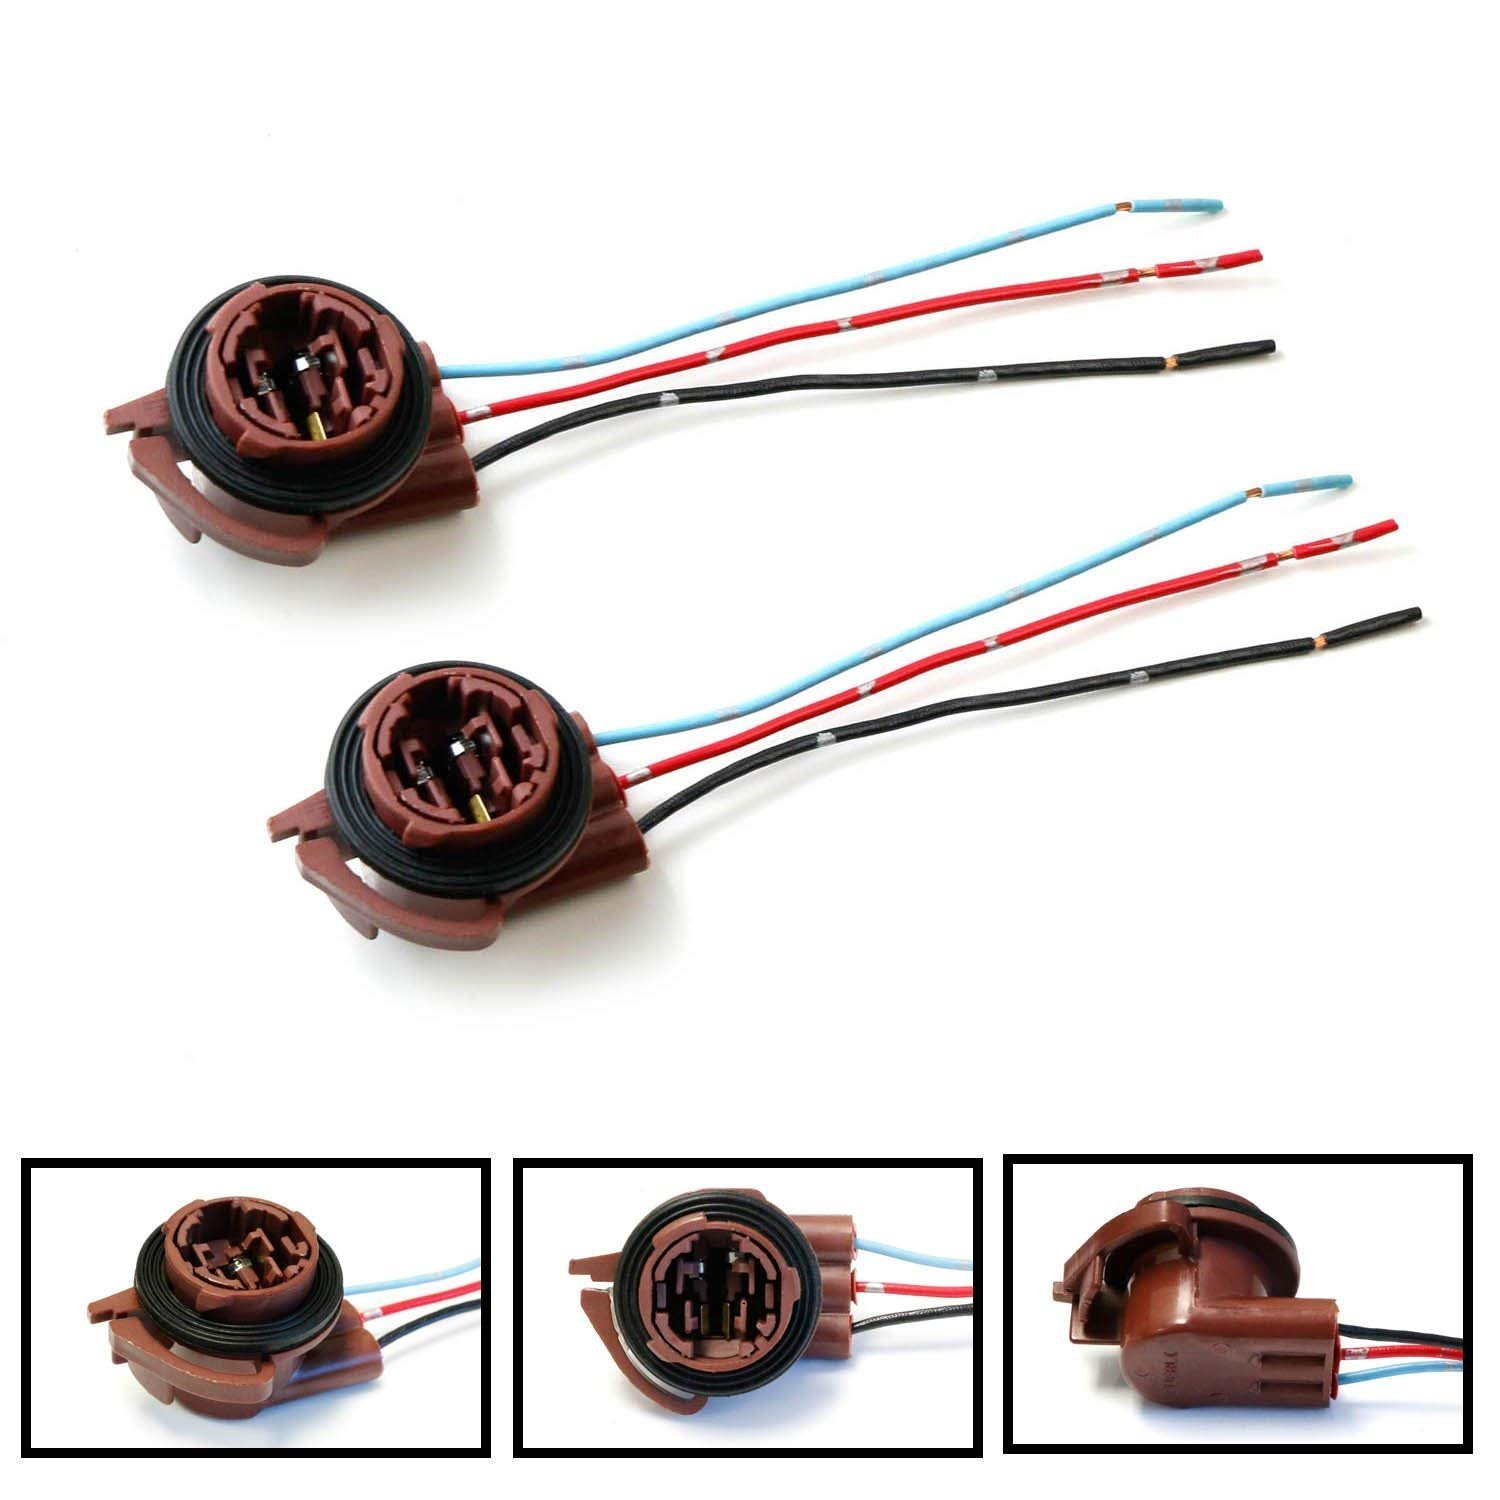 Ijdmtoy 2 3156 3157 Pre Wired Harness Sockets For Taillight Wiring Chevy Avalanche Repair Replacement Install Led Bulbs Turn Signal Lights Drl Lamps Or Brake Tail